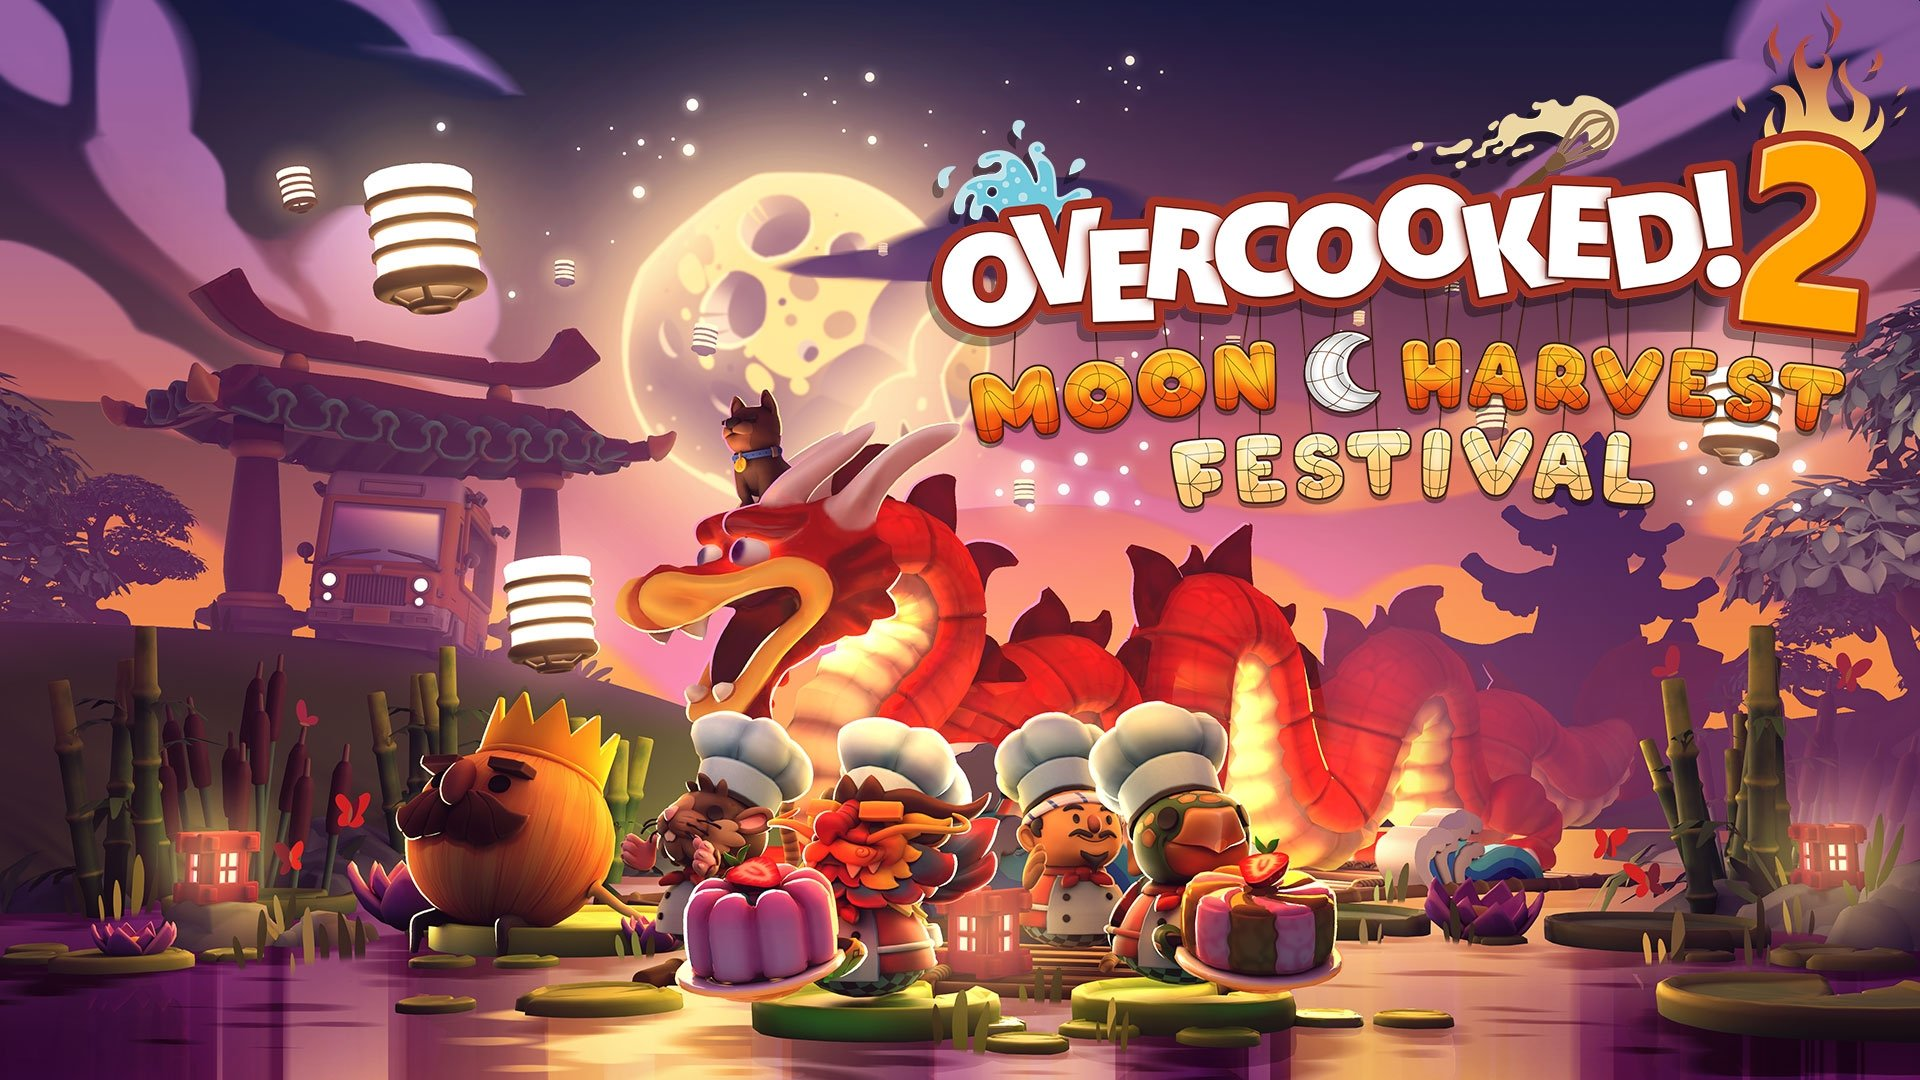 Overcooked! 2 Celebrates The Mid-Autumn Festival With New Moon Harvest Update